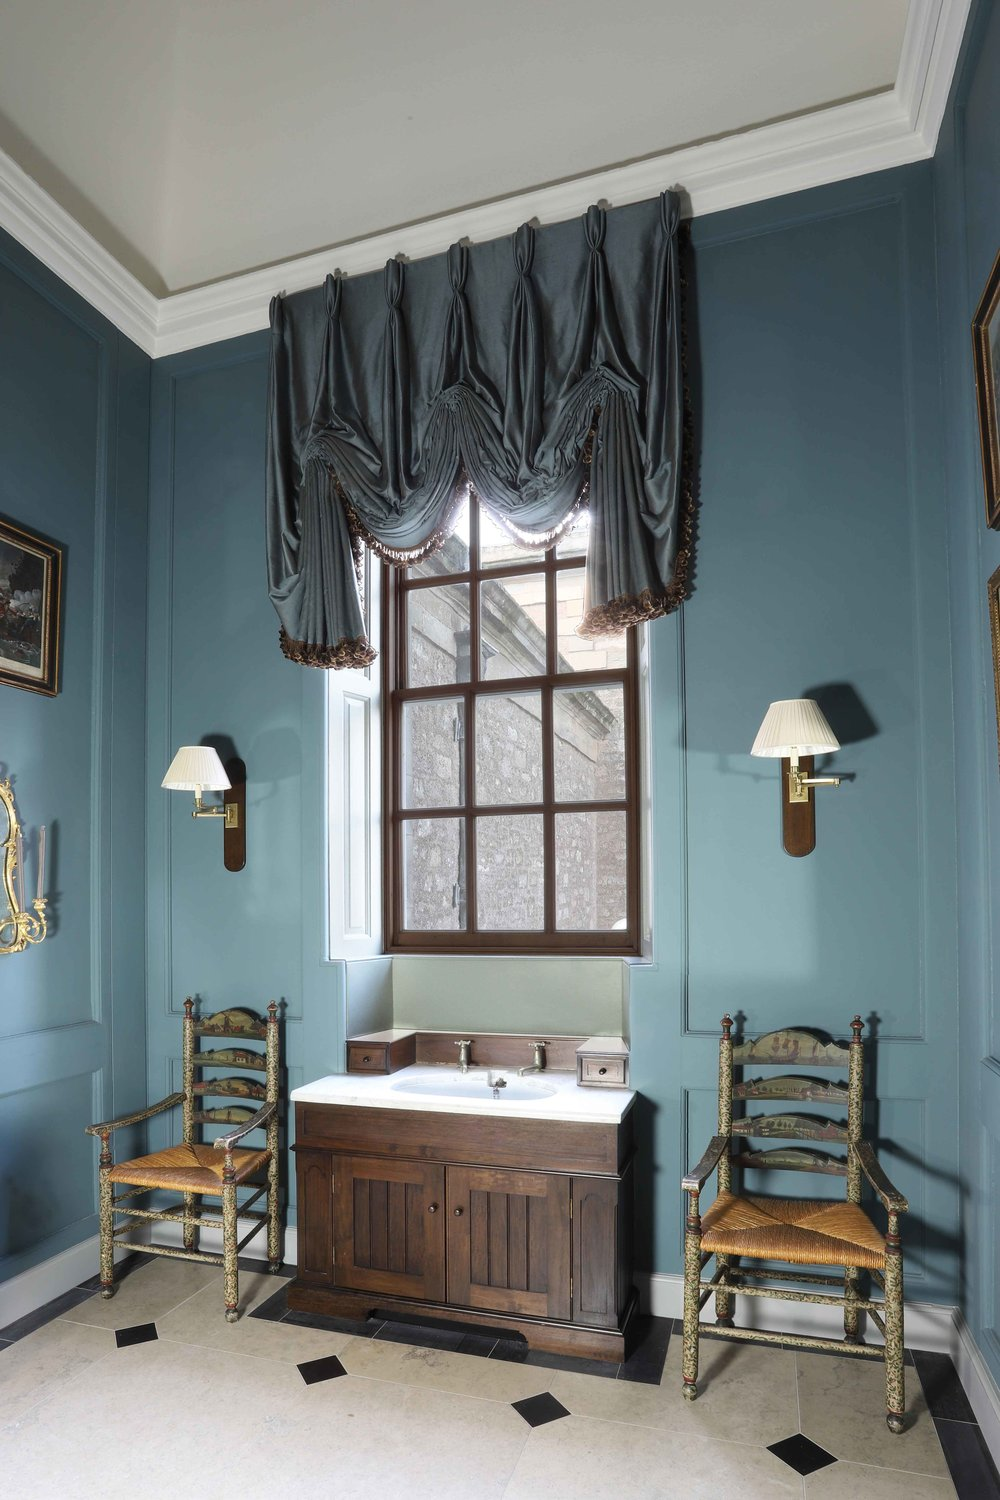 Sink unit in dark stained walnut with antique marble sink, Marchmont house.